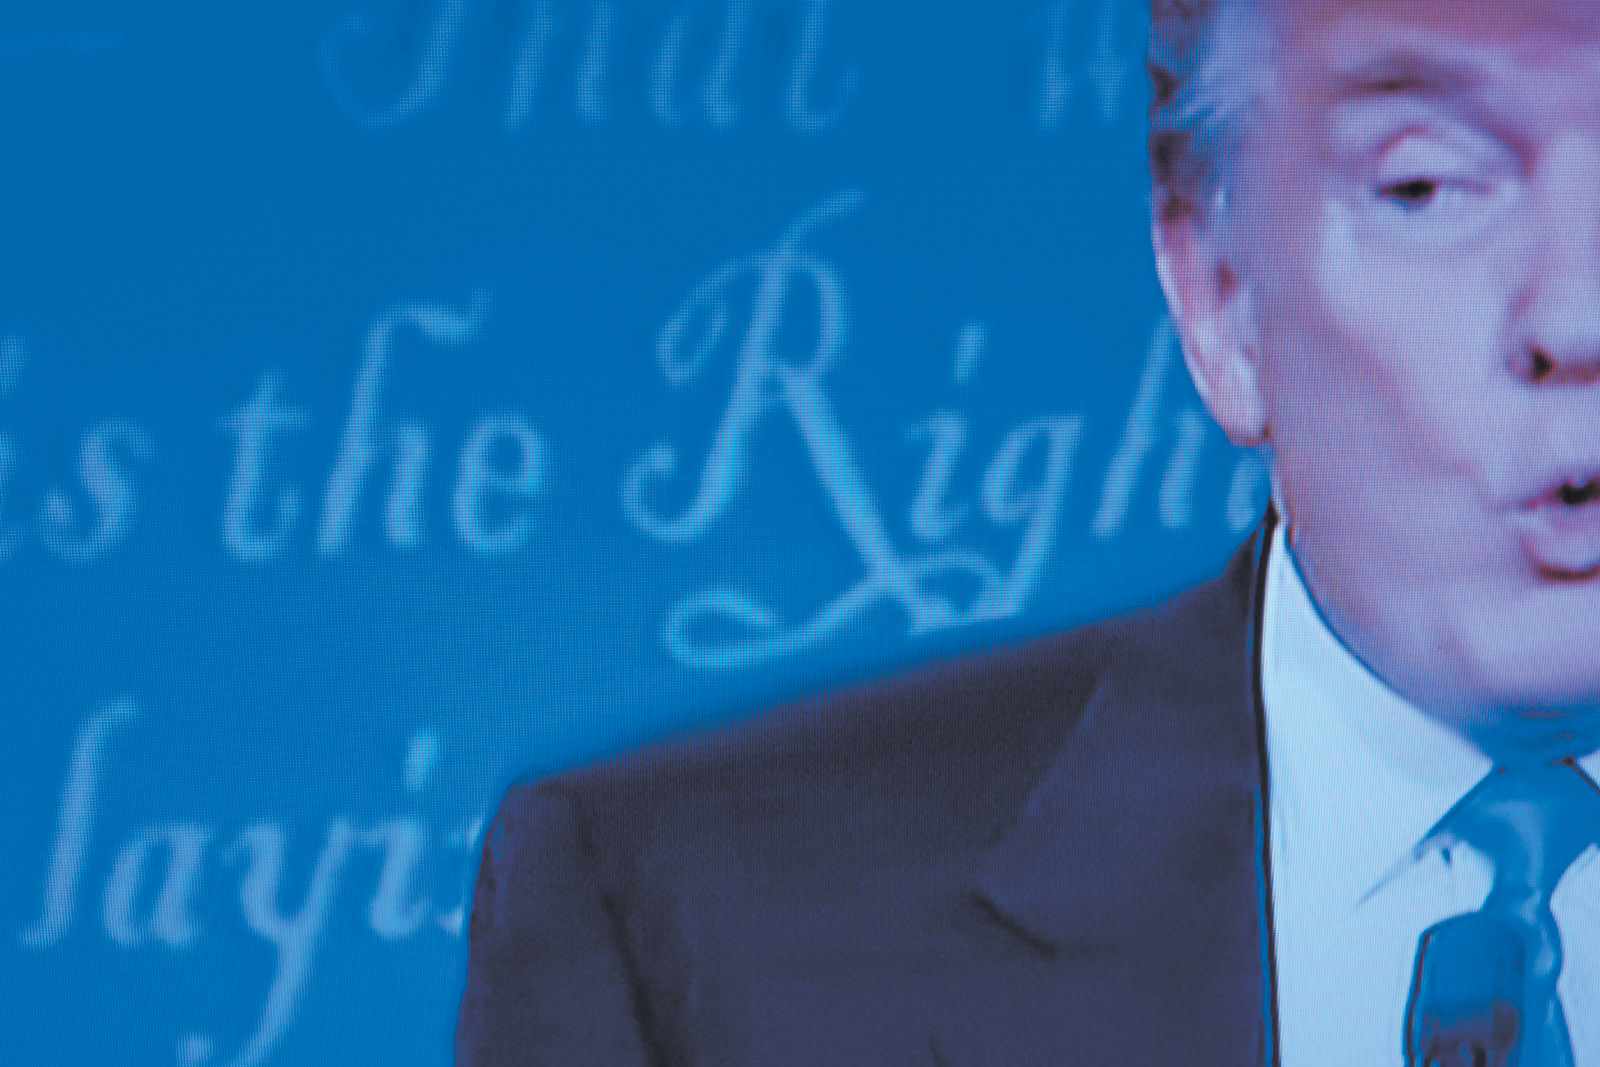 Donald Trump at the first presidential debate, Hofstra University, Hempstead, New York, September 26, 2016